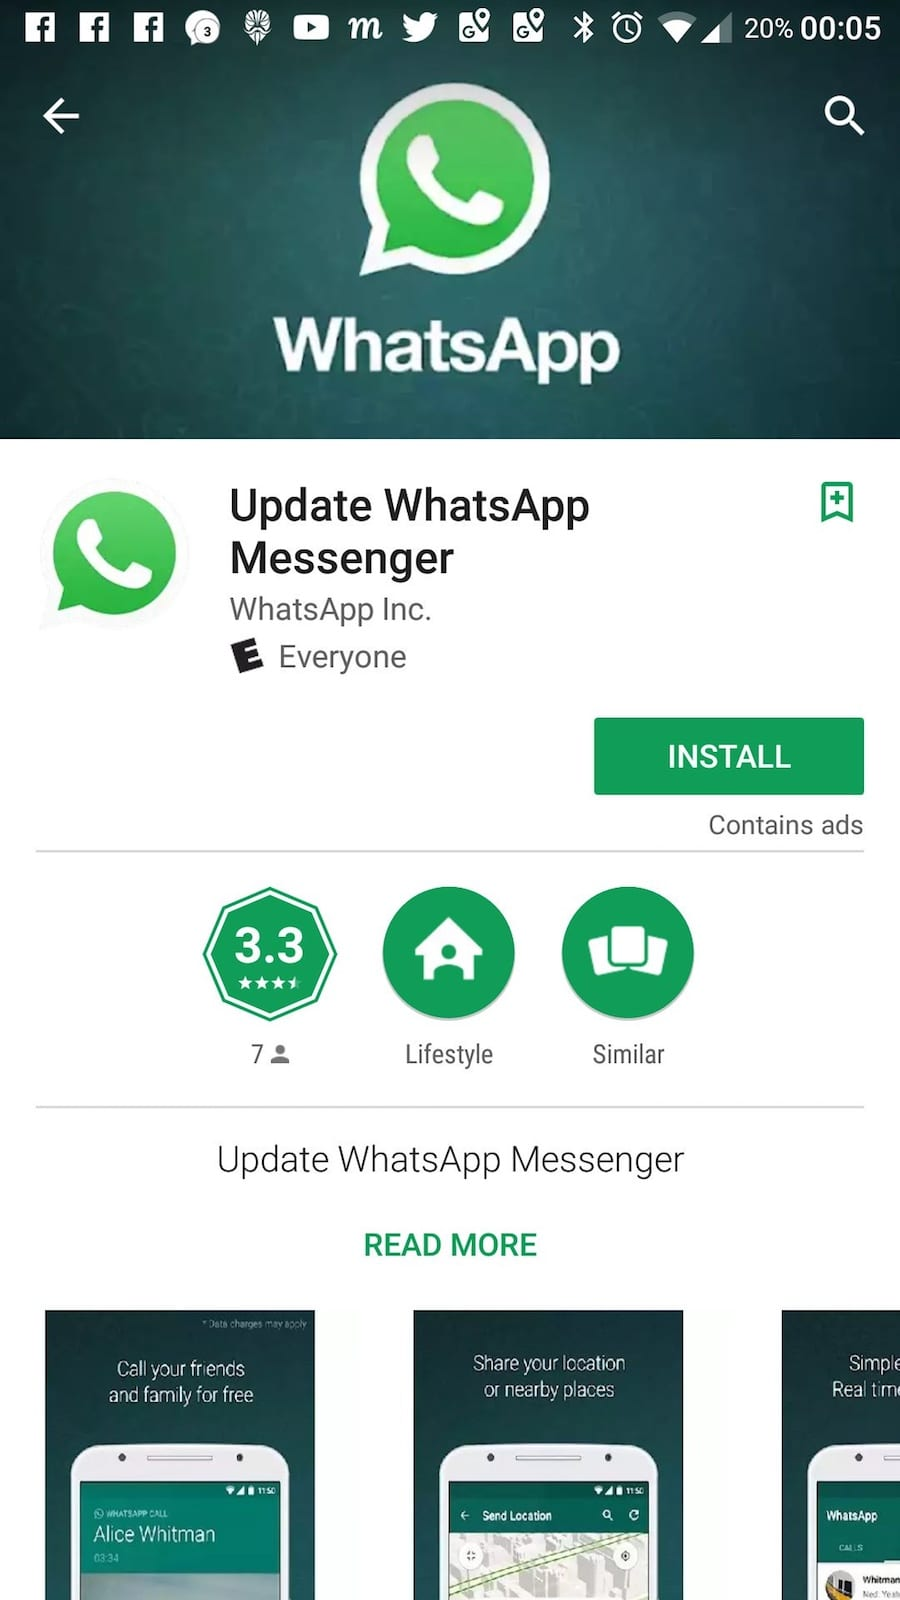 Fake Whatsapp App On Google Play Store Tricked More Than A